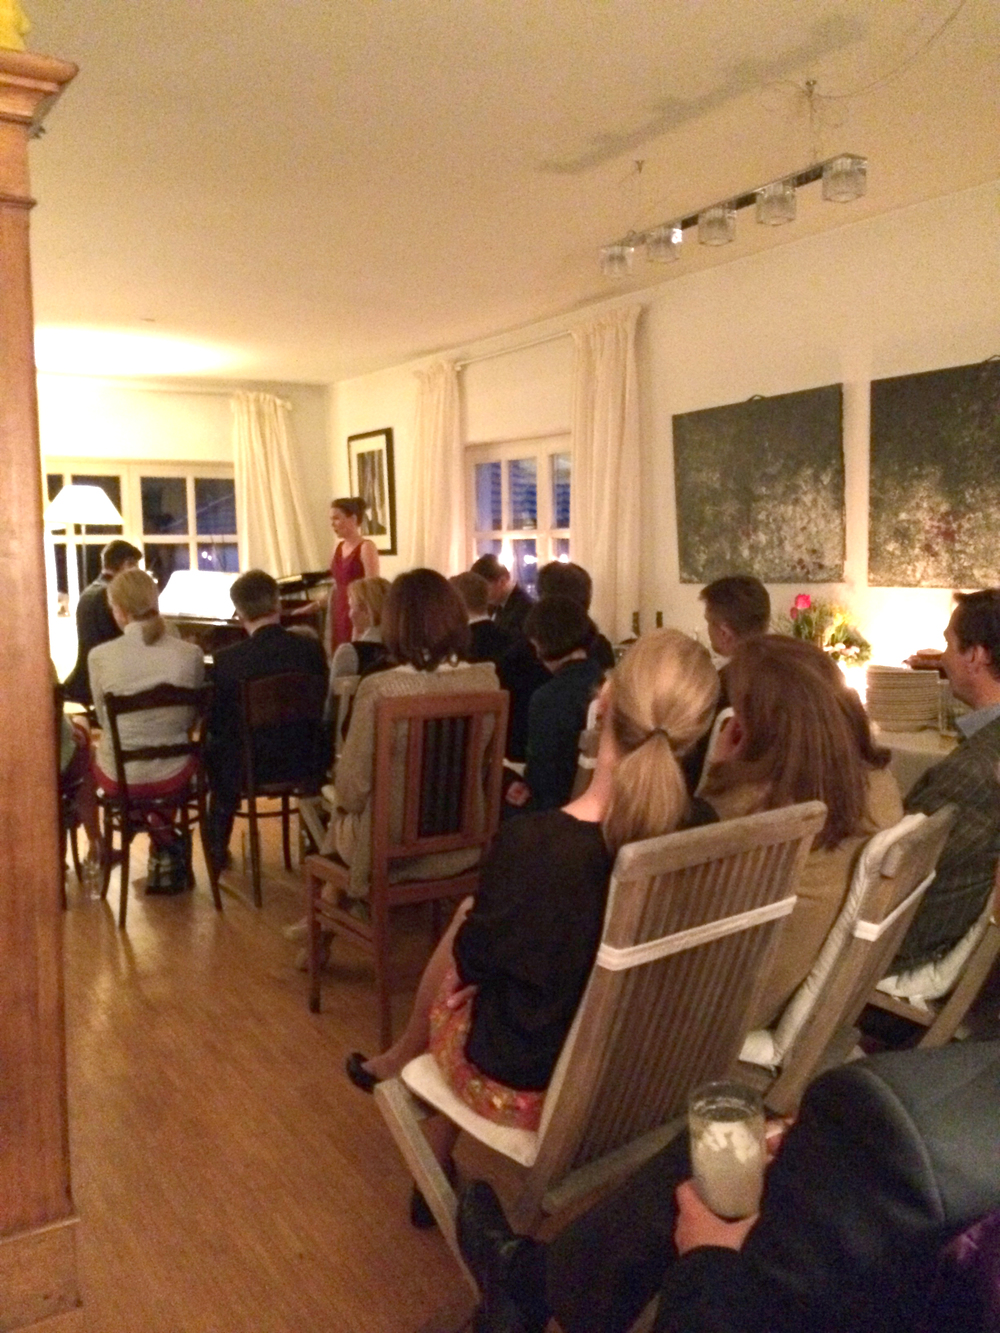 An unfortunately bad picture of a really great house concert we had.